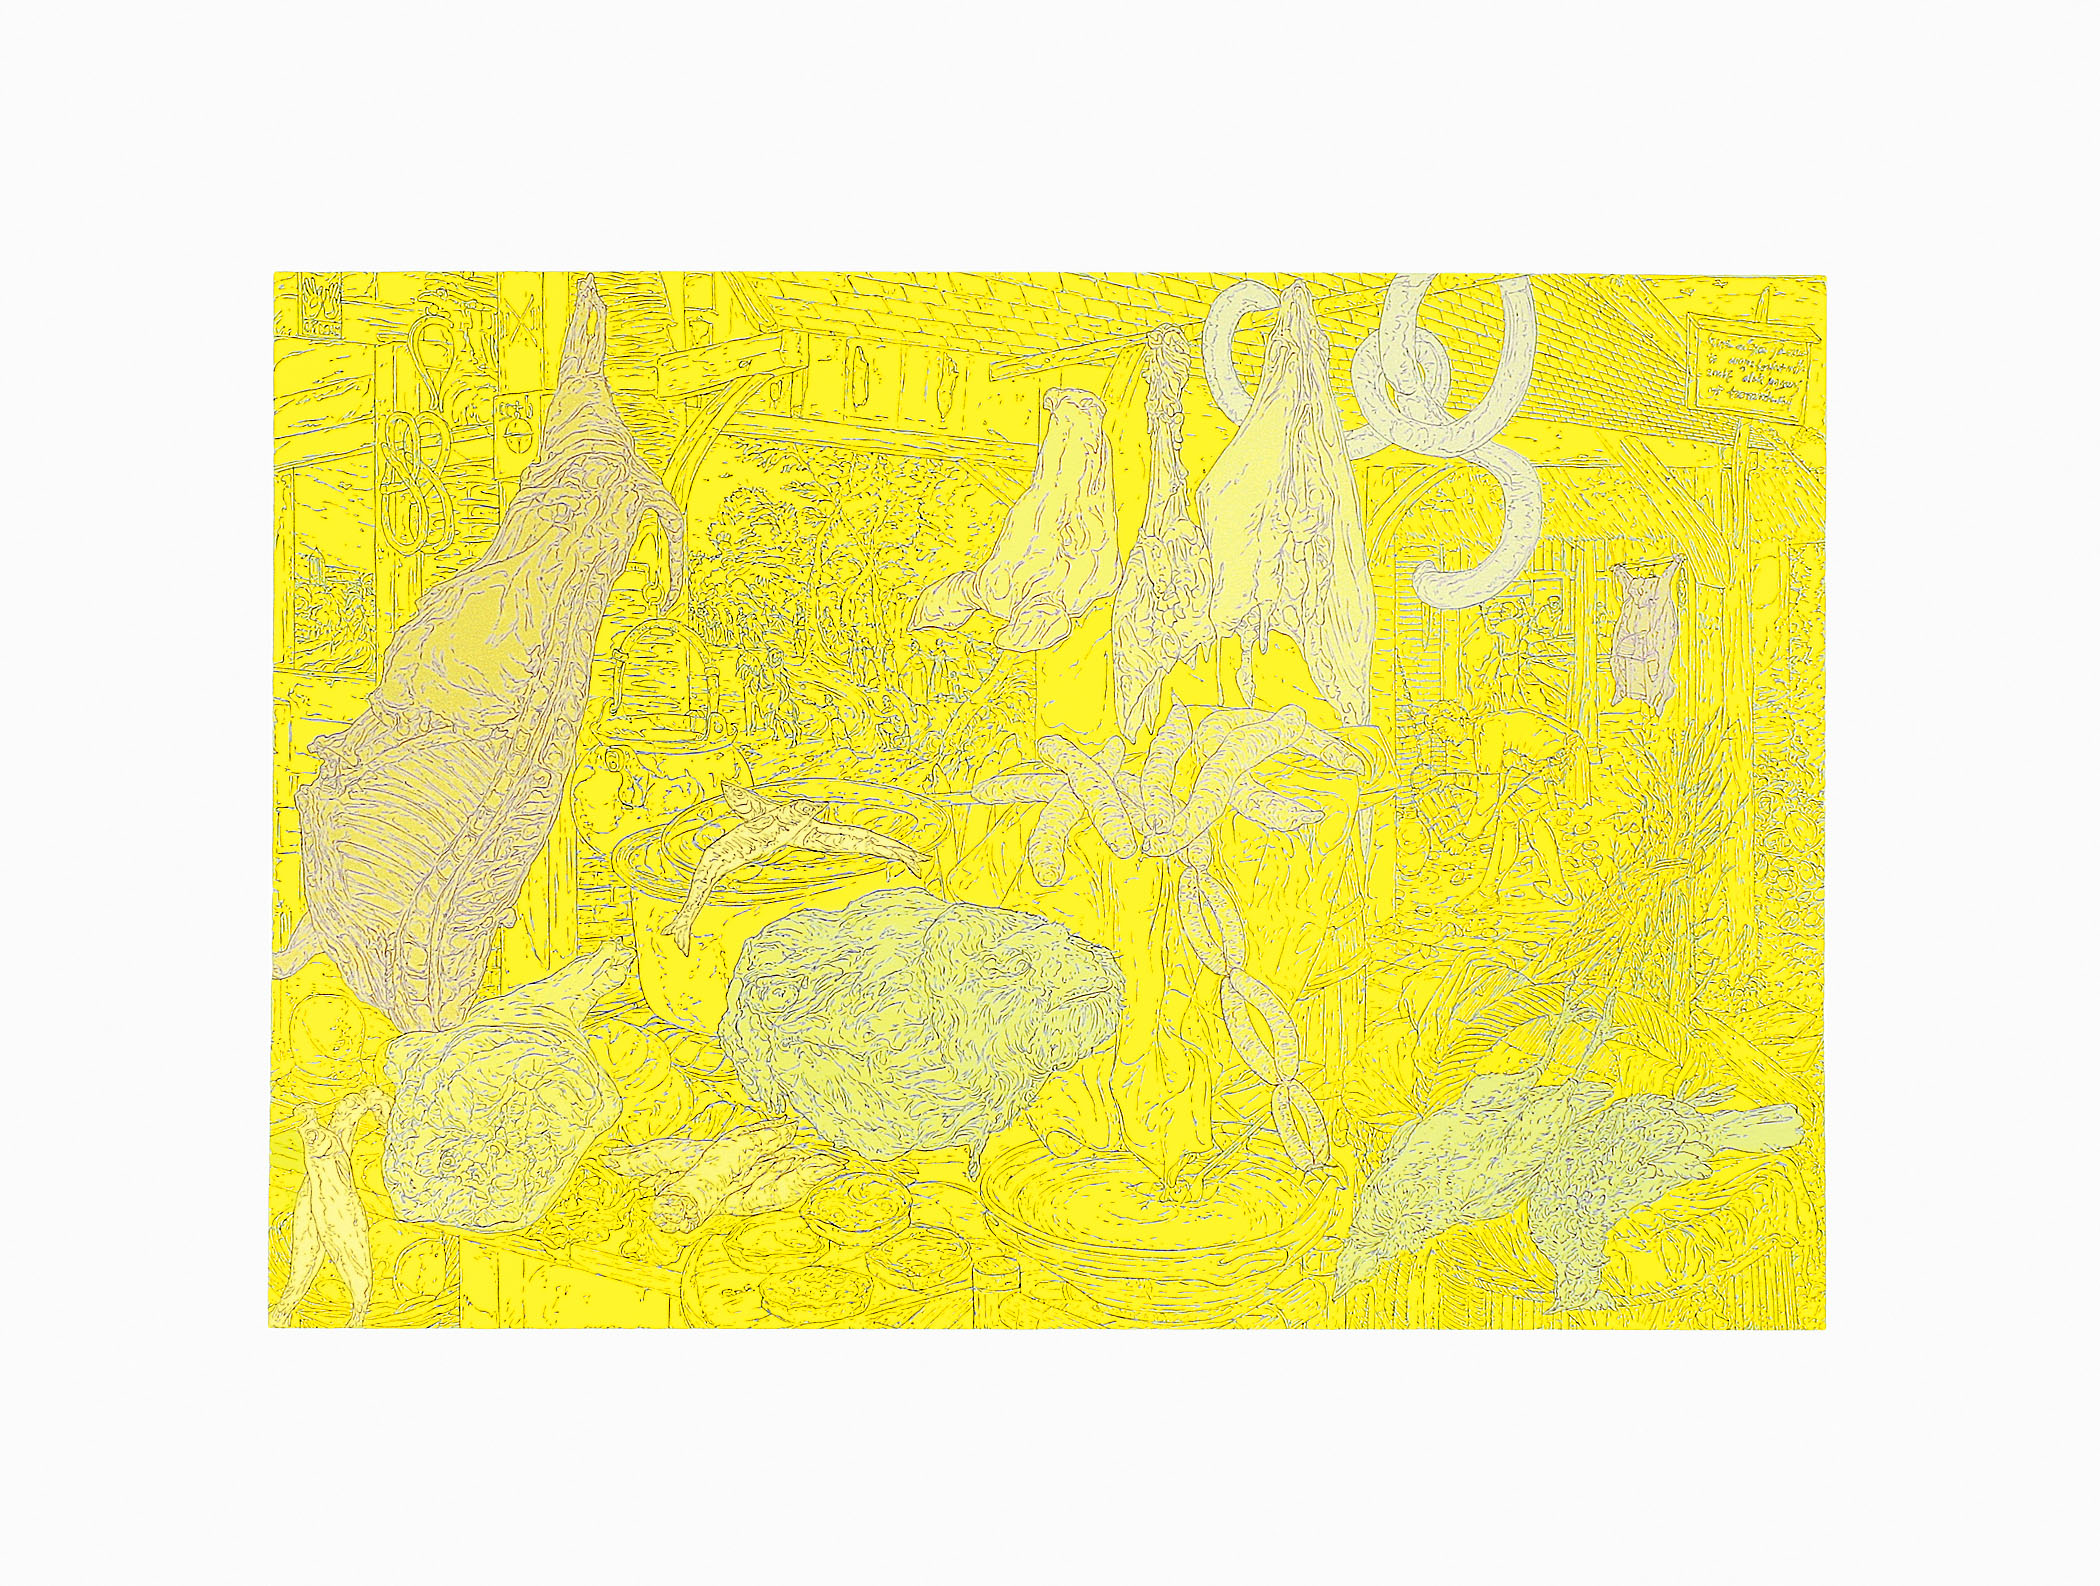 STA-2013-0011 Untitled (Neon Old Master)_2013_42.5 x 54 inches_PLATE (1).jpg